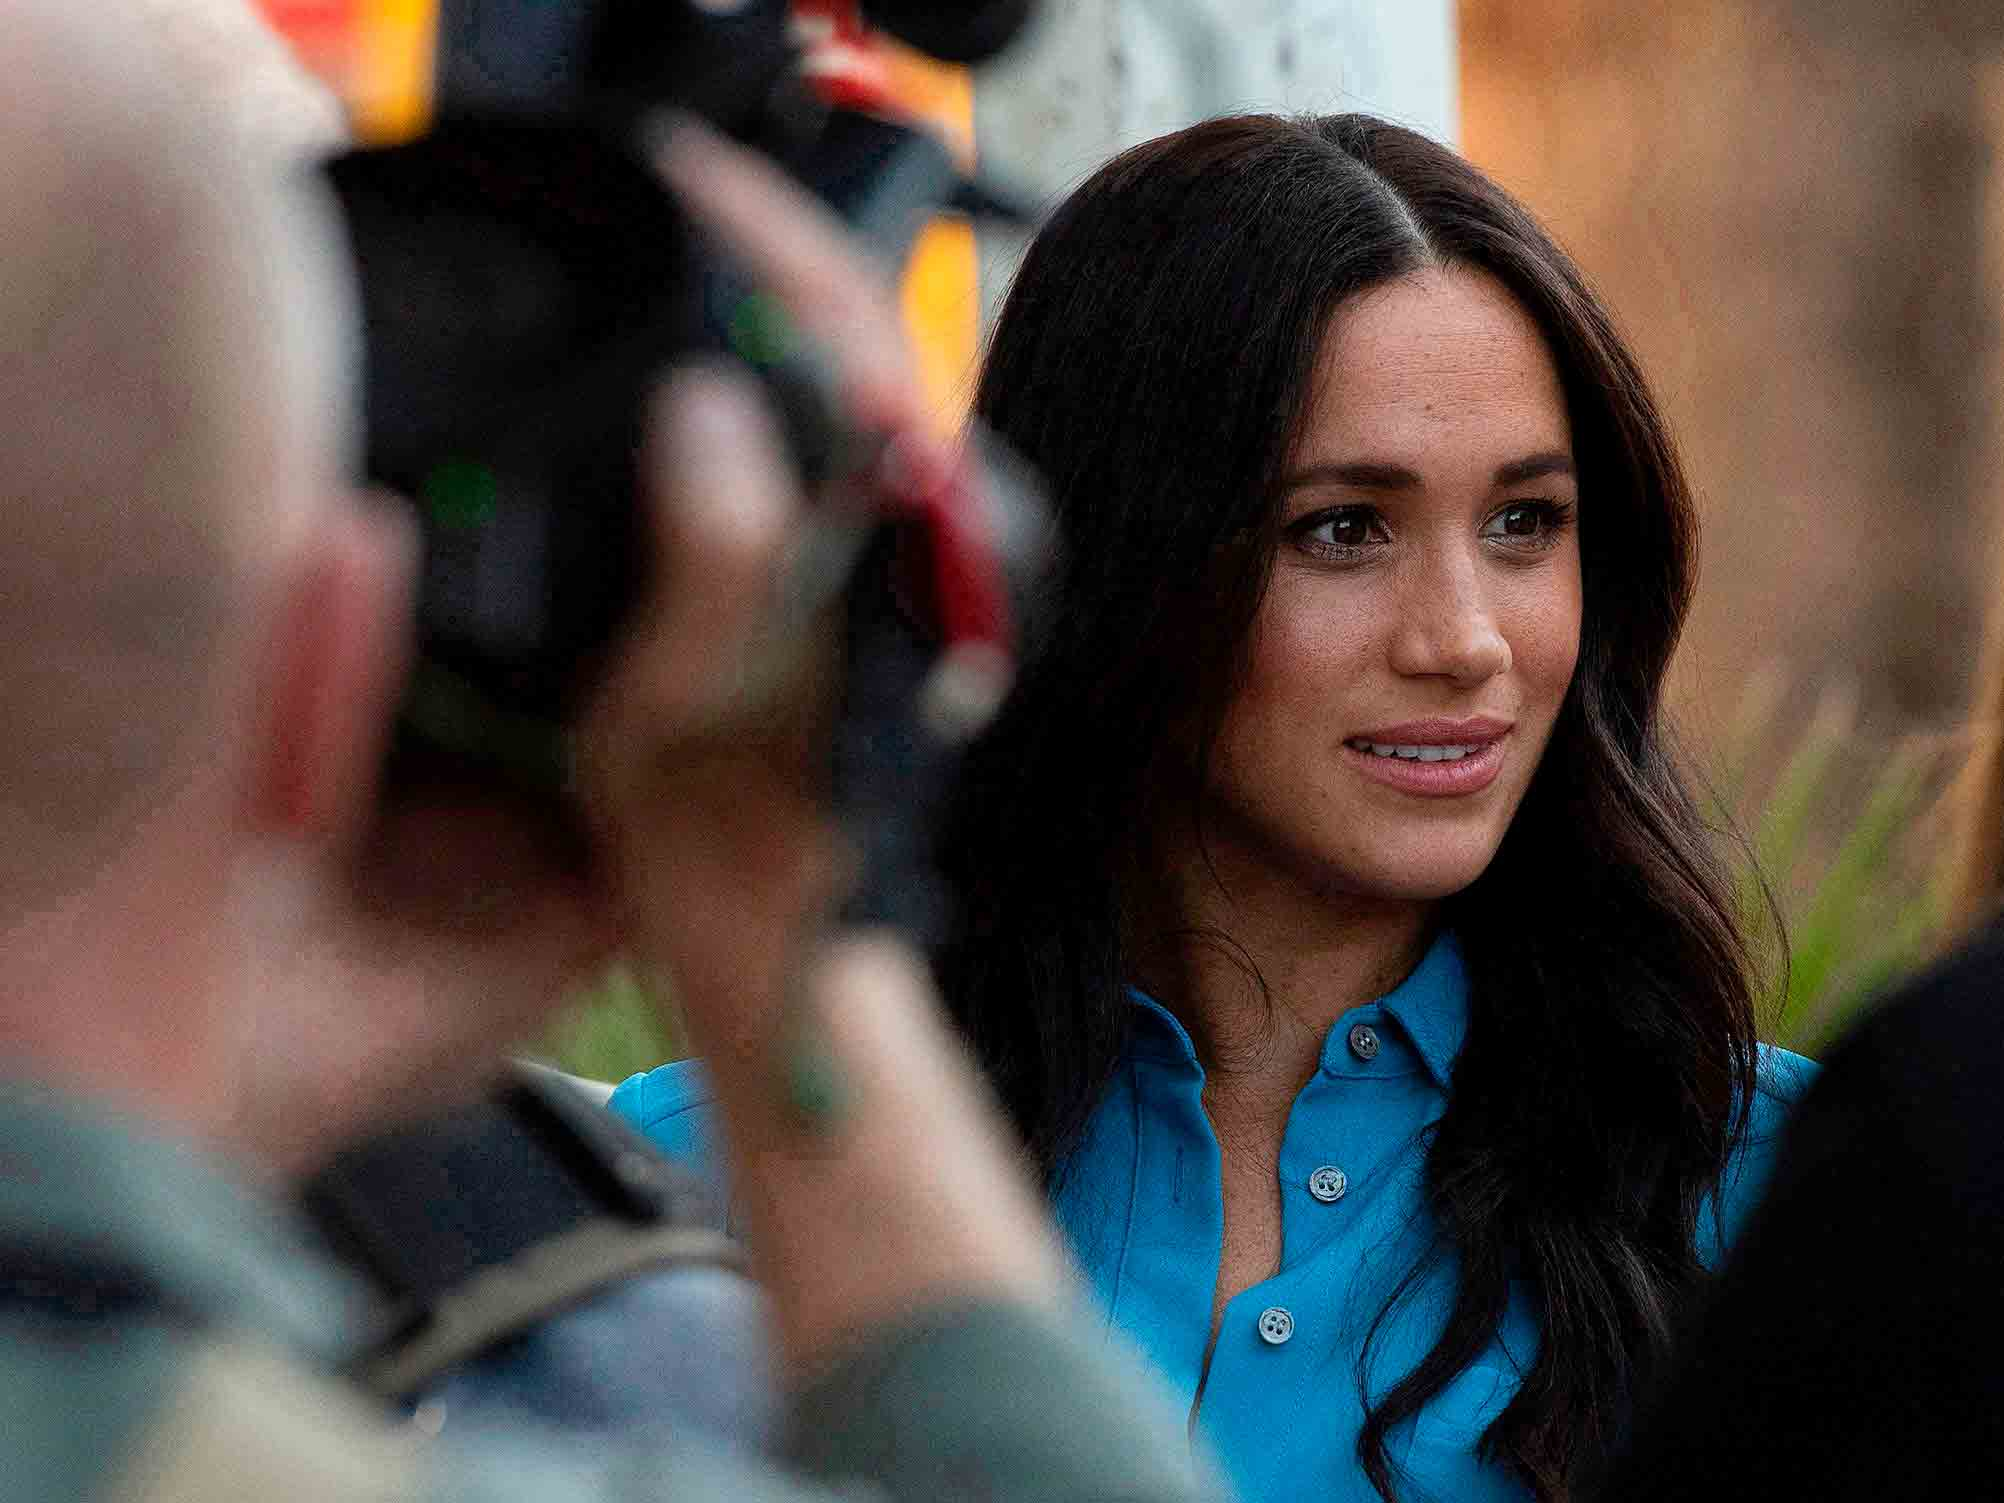 Duchess of Sussex Meghan Markle Says She Had Miscarriage - Bloomberg